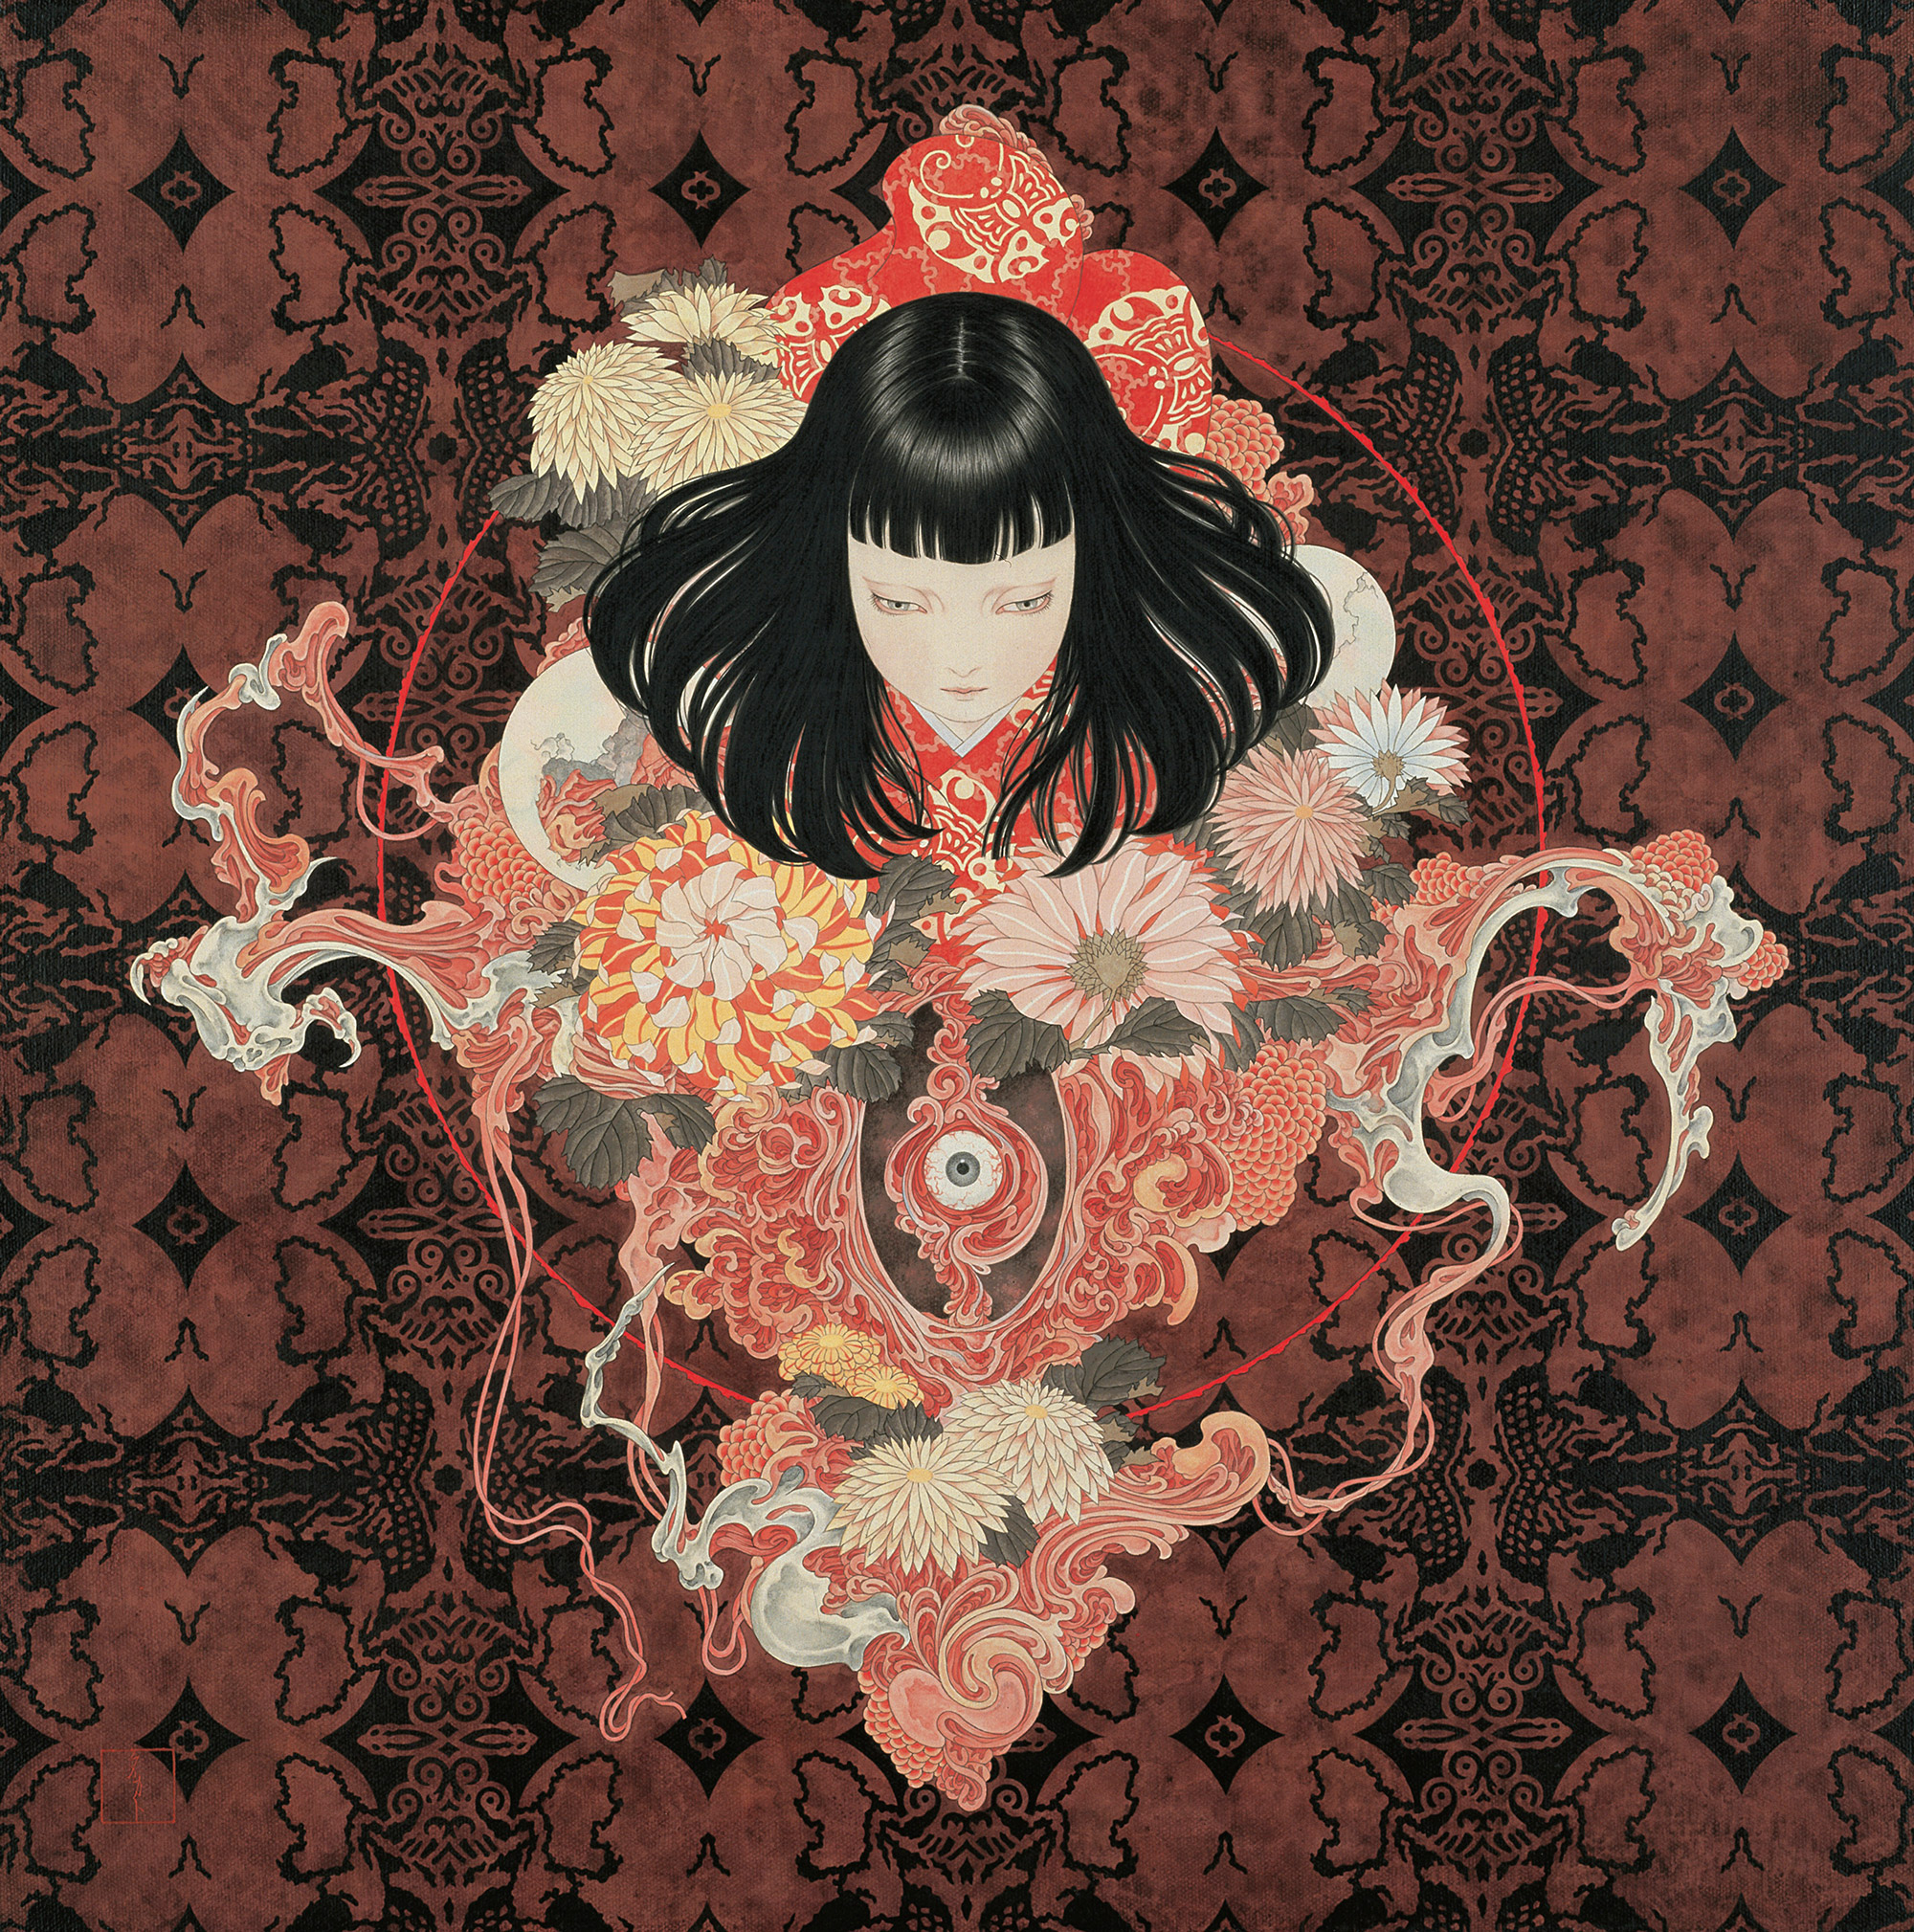 Death and Fantasy: Paintings by Takato Yamamoto